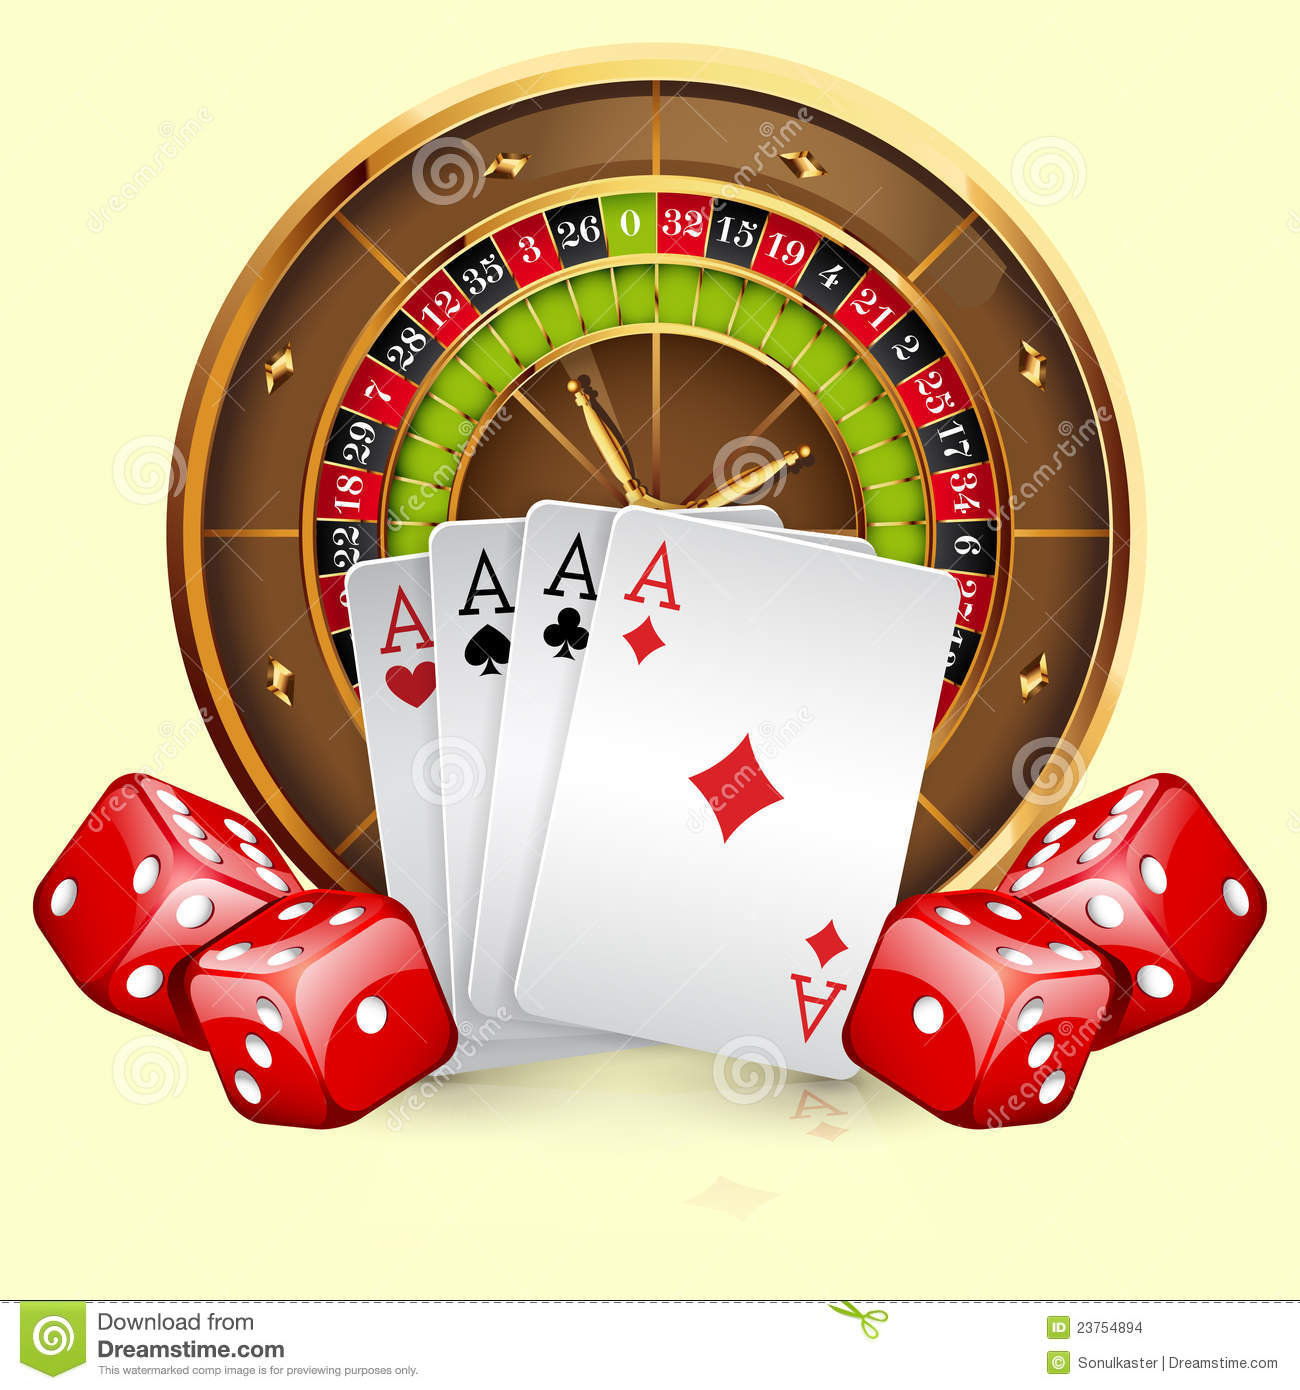 Illustration Of Casino Roulette Wheel With Cards And Dice  Isolated On